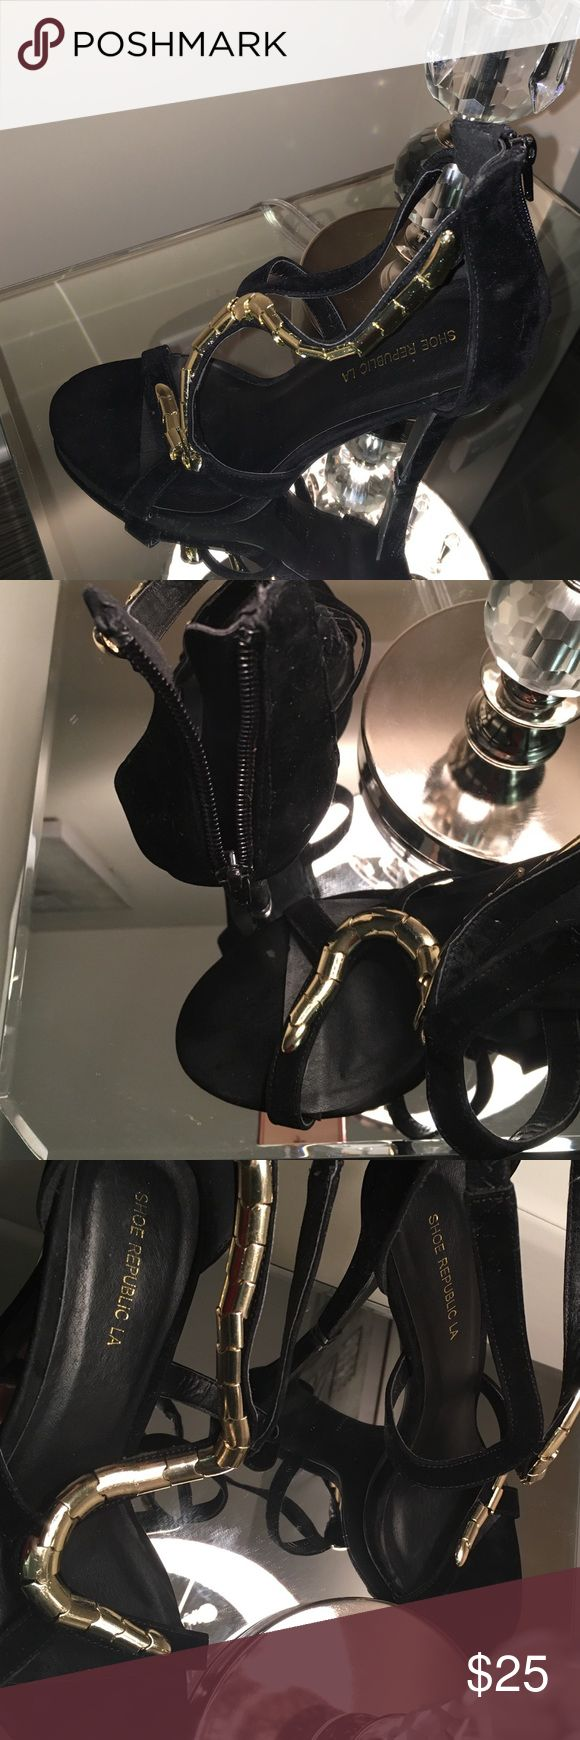 Black and Gold Strap Heels Sz. 8 Dazzle in these velvet suede black and gold strap heels. Wear on the bottom from try on in the store and the heel is 4.75 inches. Brand Shoe Republic LA and purchased at a boutique in NYC Shoes Heels